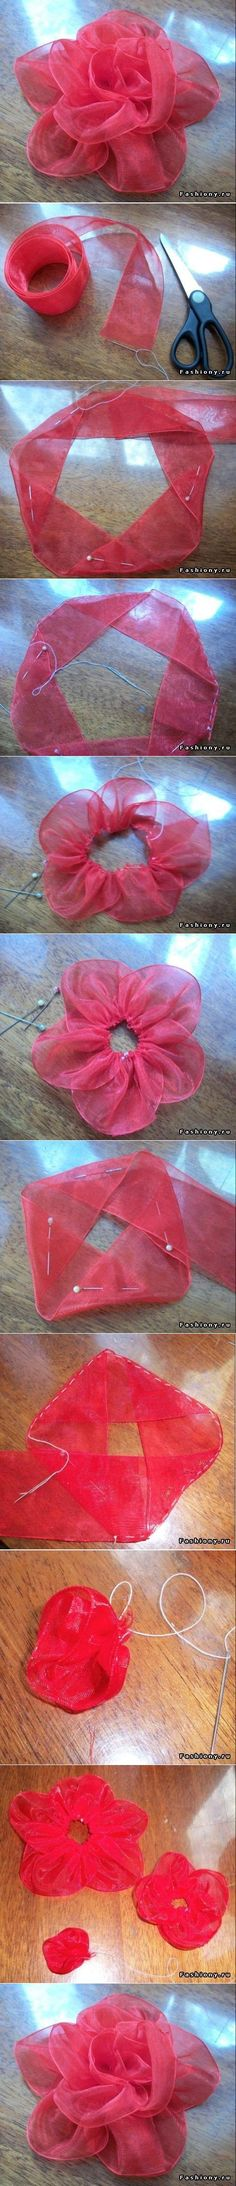 DIY Ribbon Tape Flower DIY Ribbon Tape Flower